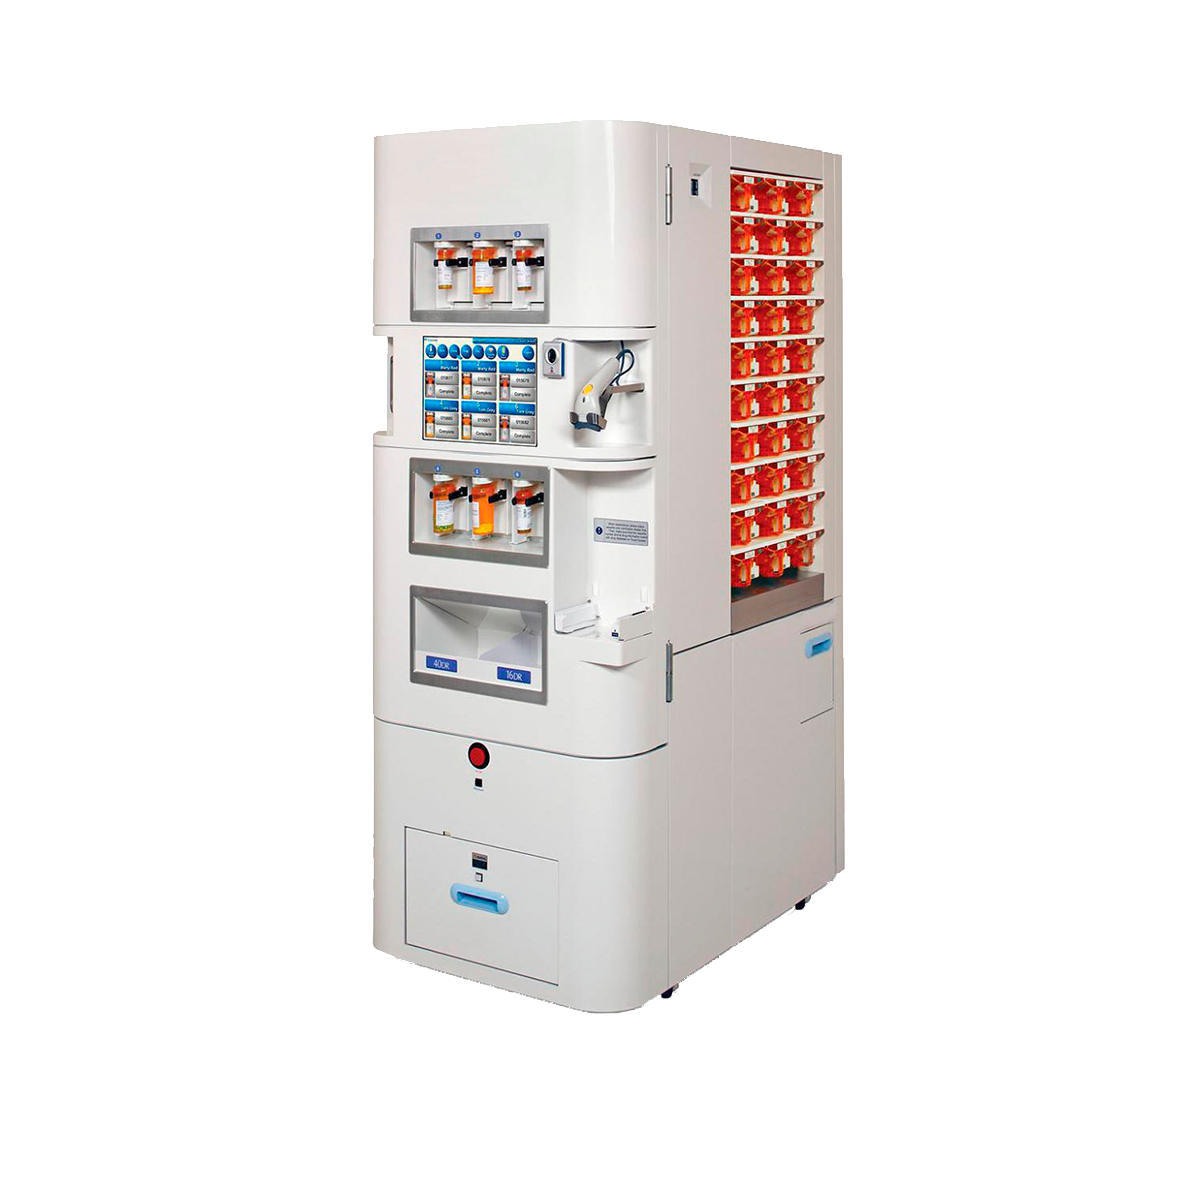 Automated dispensing systems